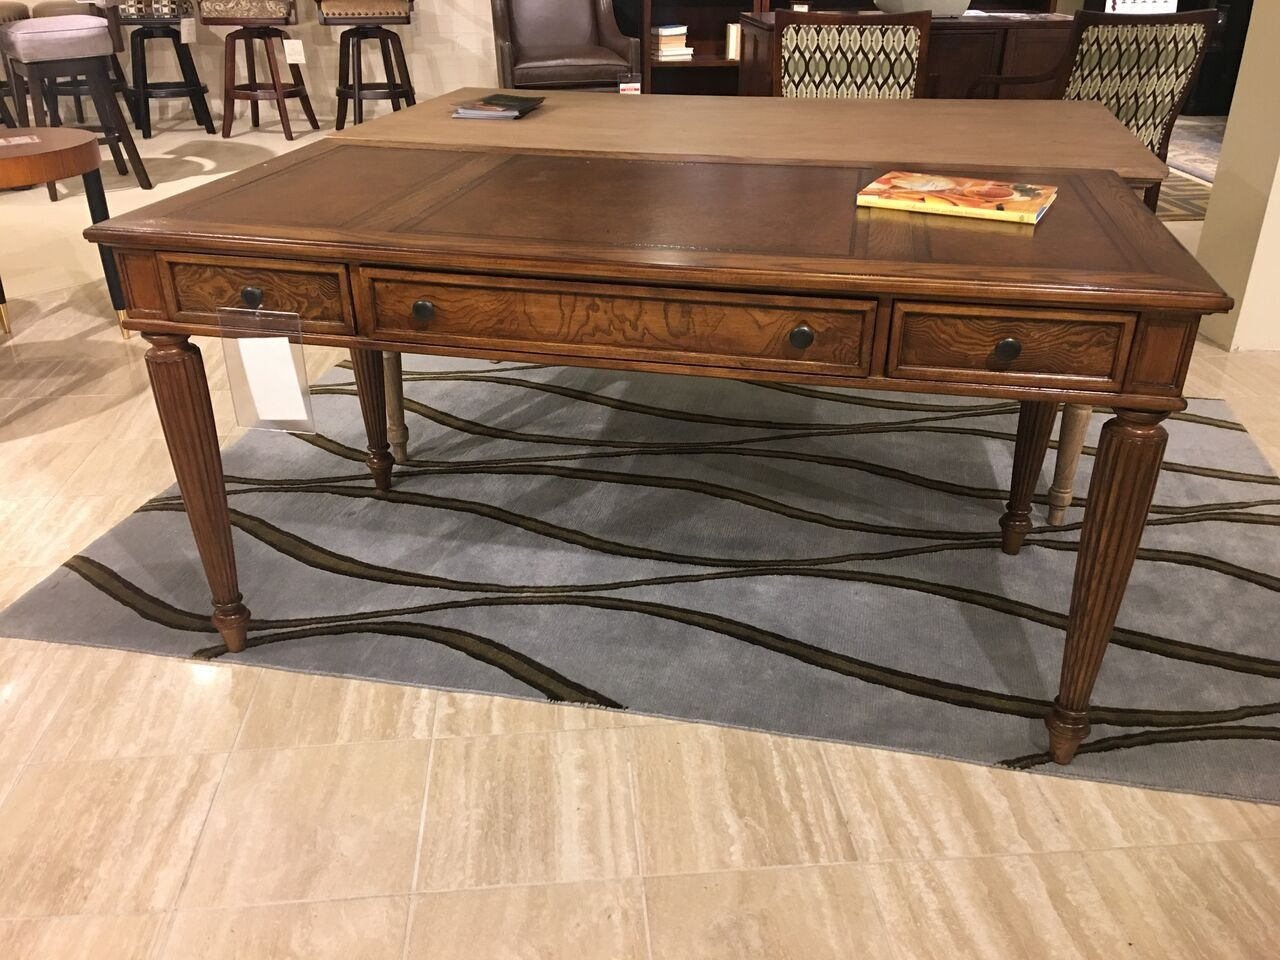 Hickory Park Furniture Outlet Urban Table Desk By Hekman Jul 08